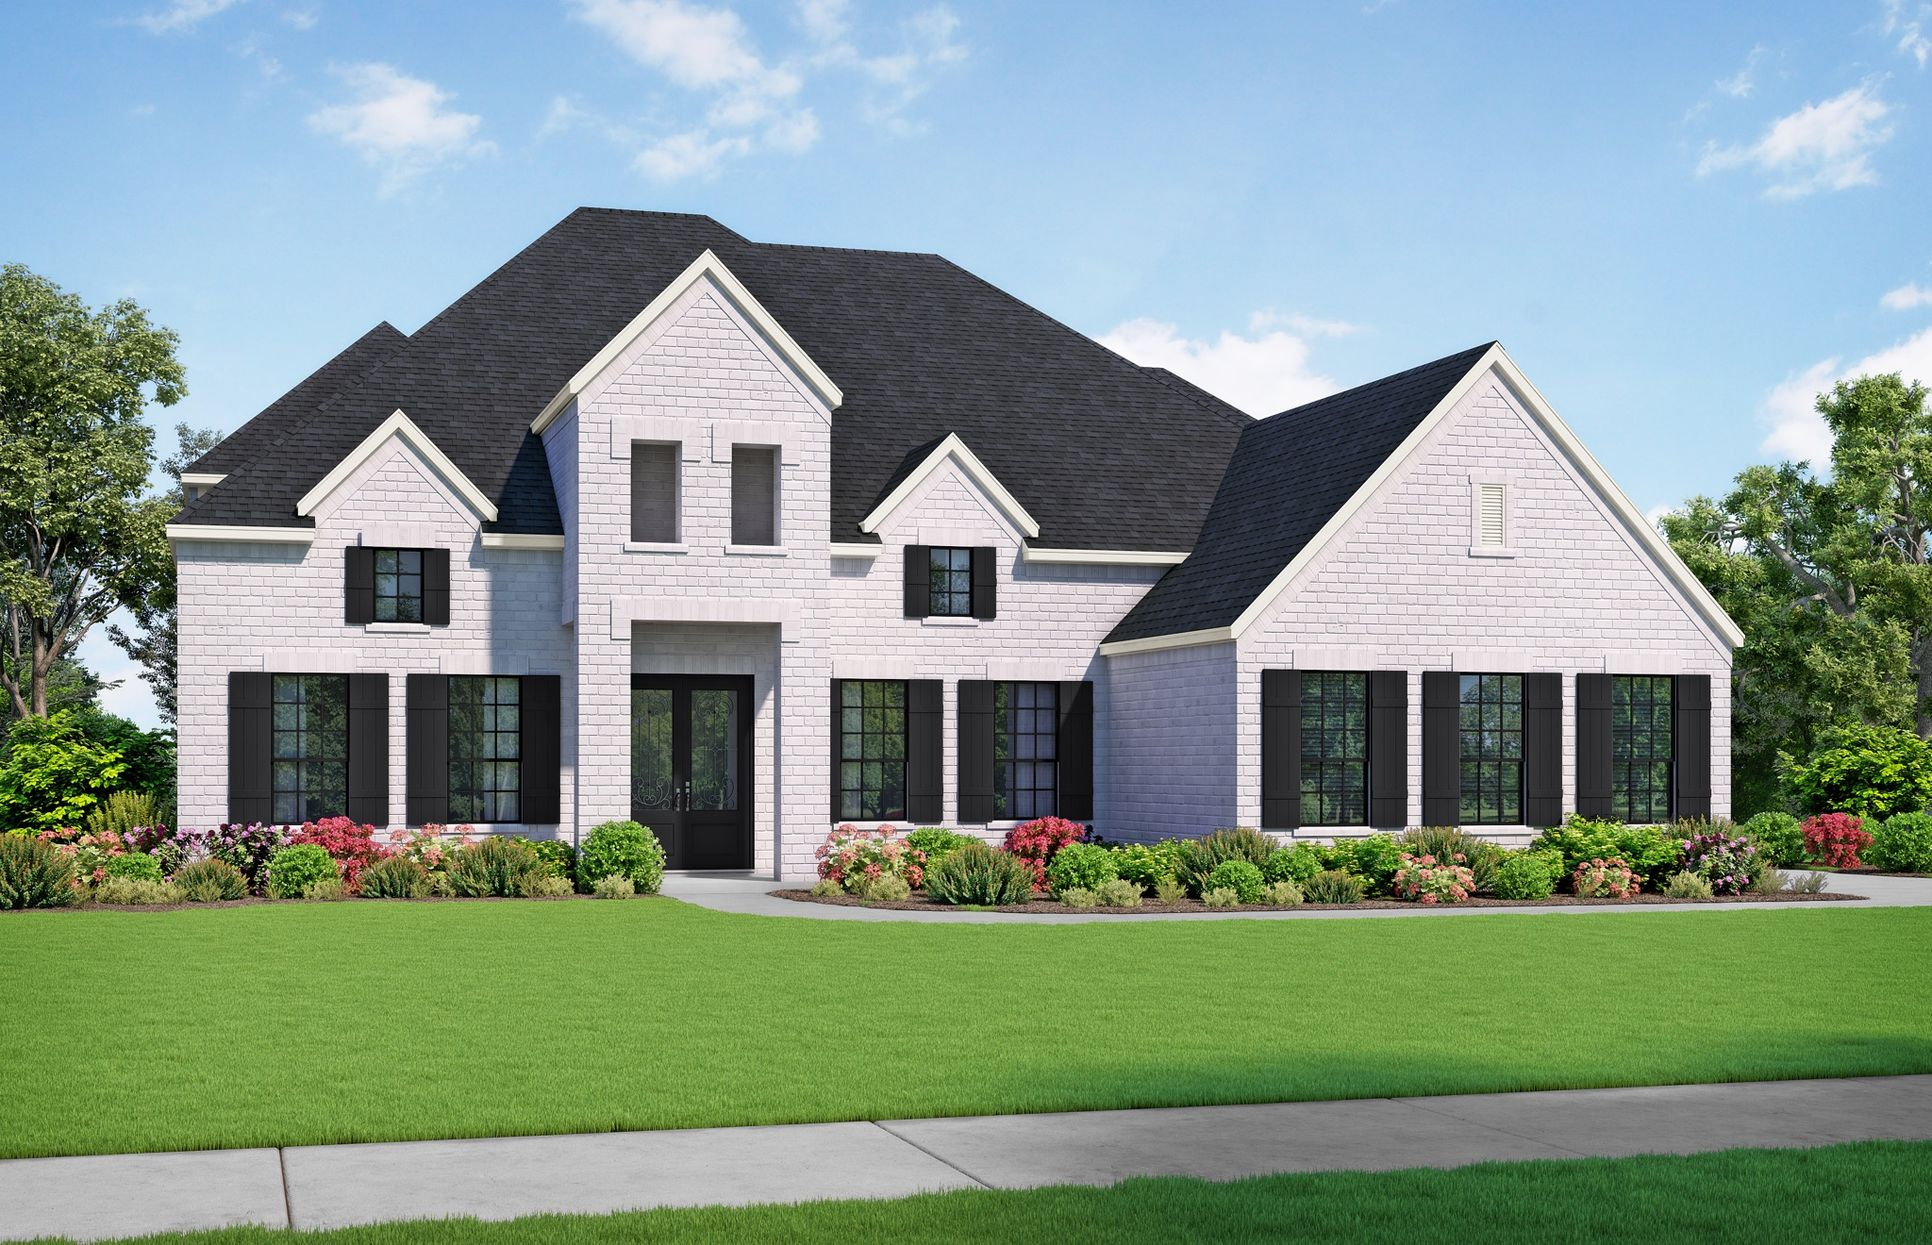 Bayliss Elevation A. Images are artist renderings and will differ from the actual home built.:Bayliss Elevation A